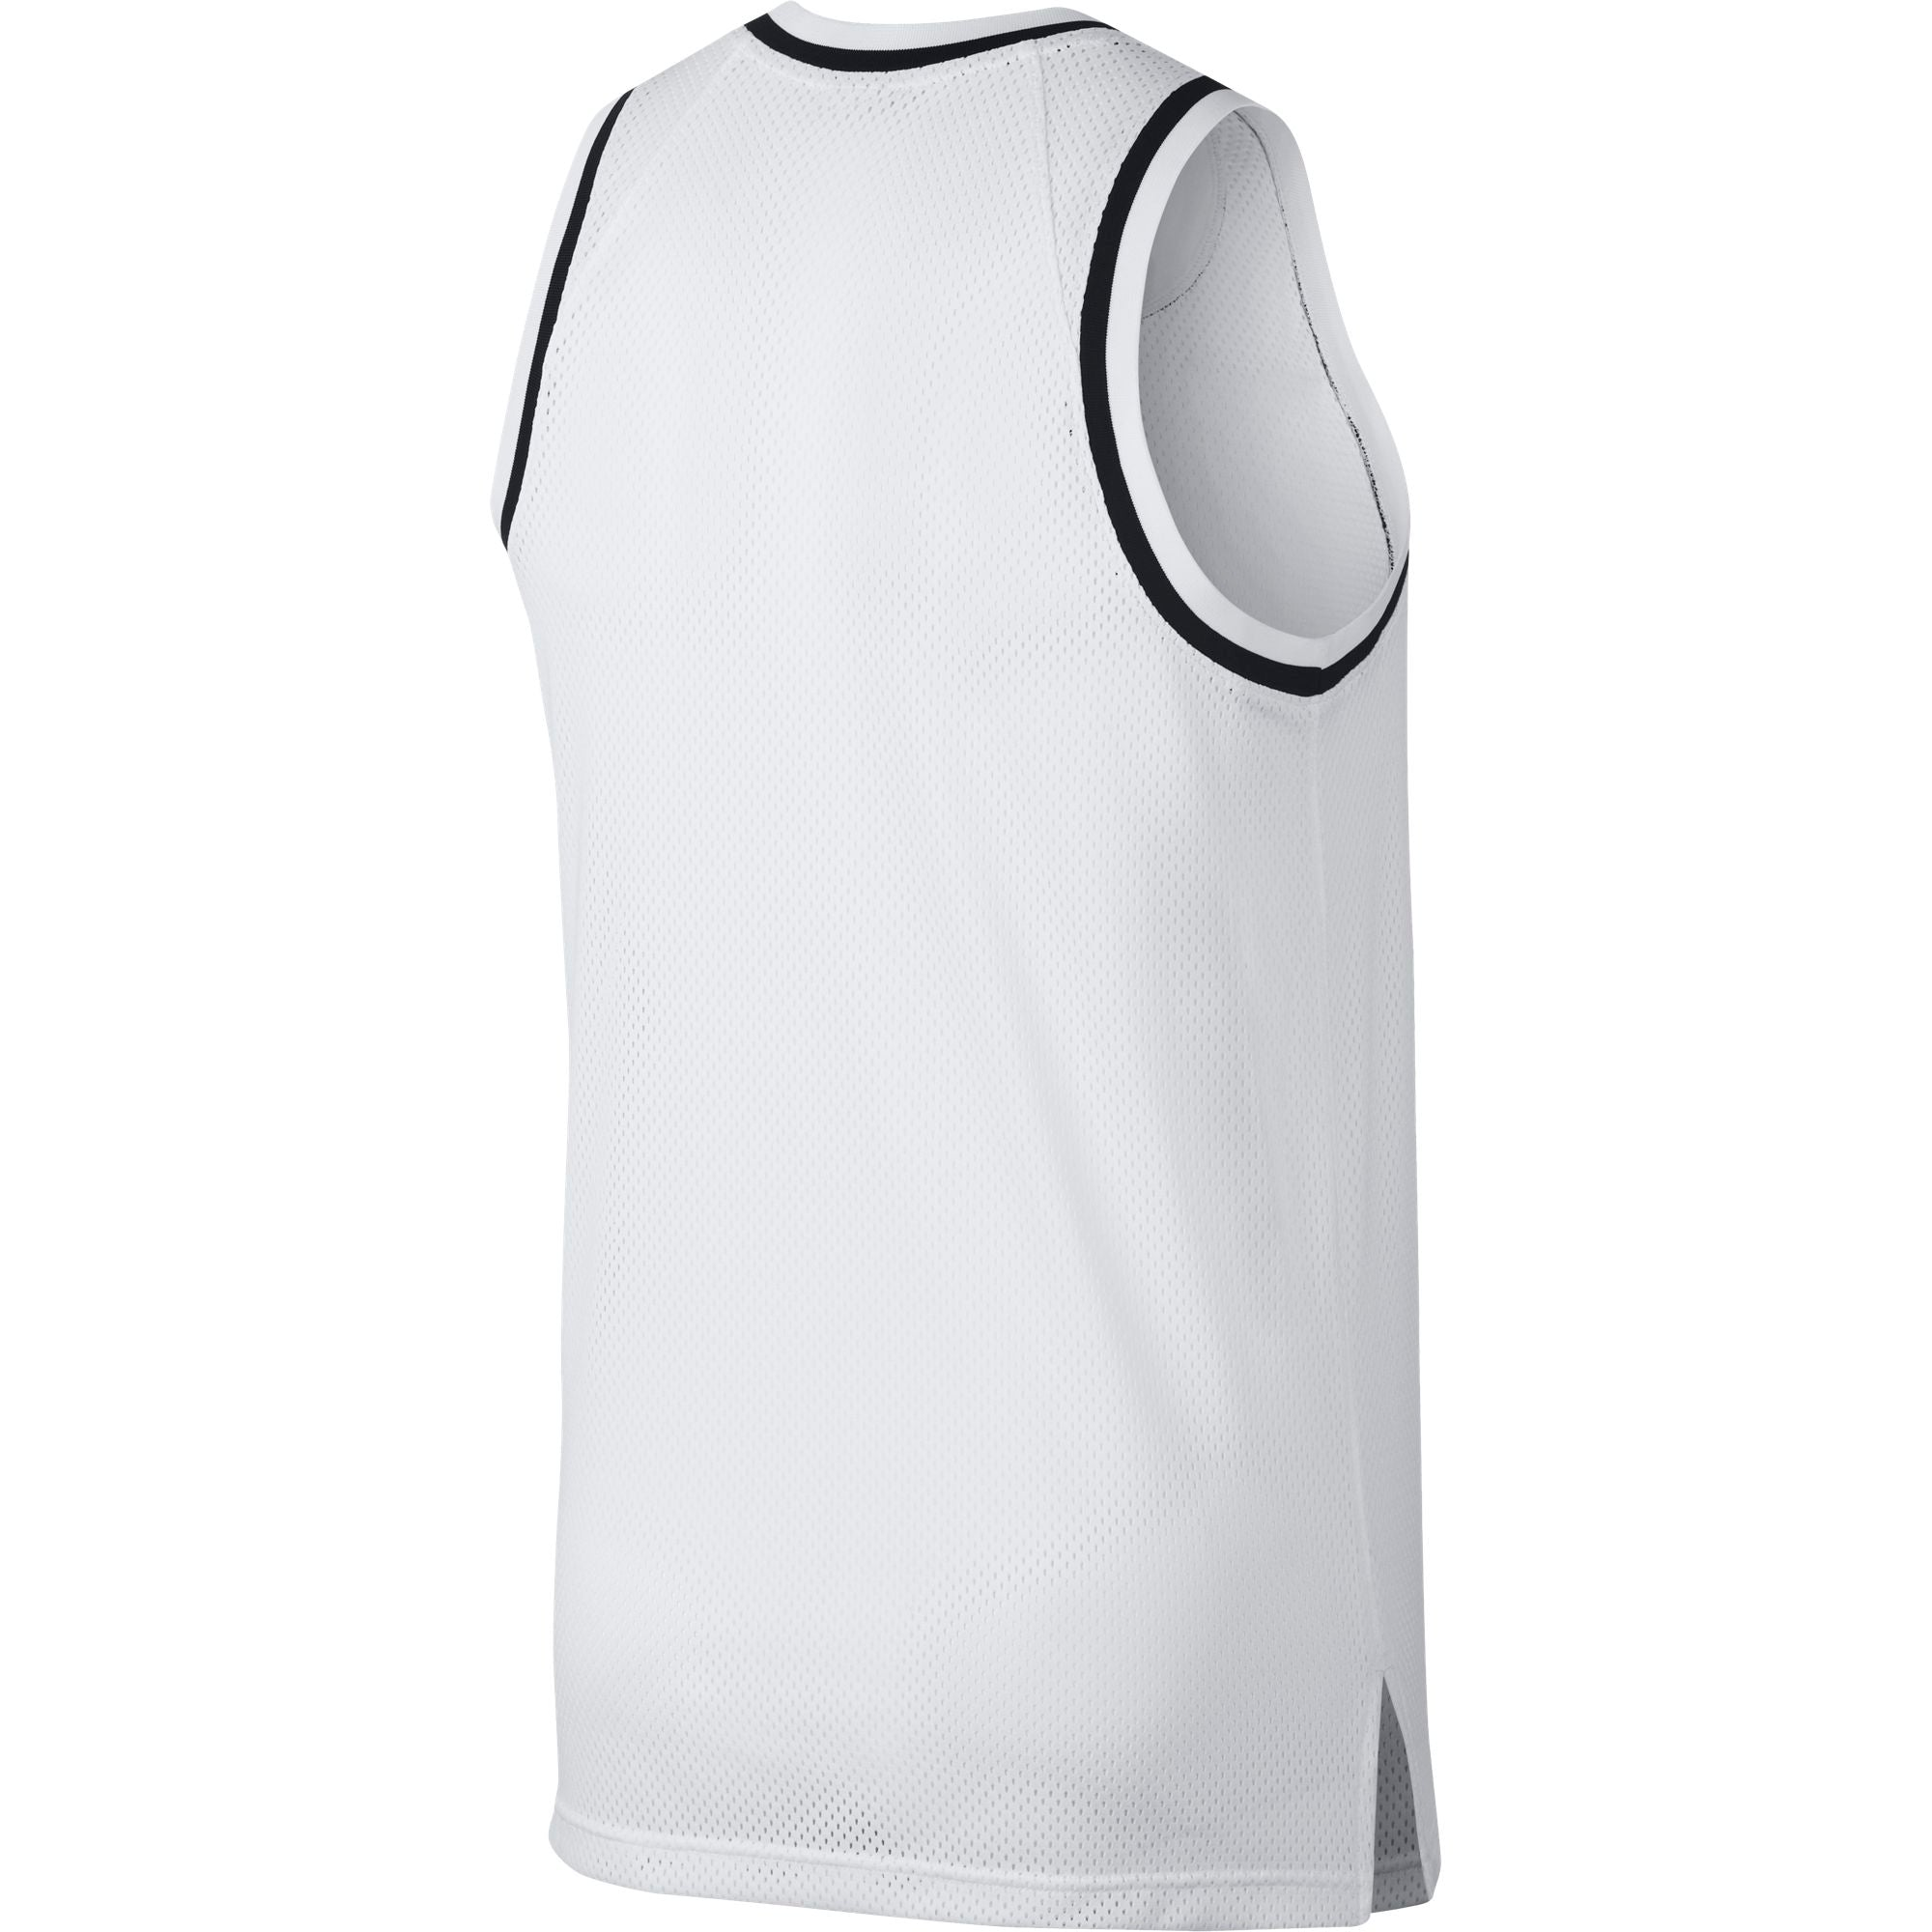 Nike Basketball Dri-fit Classic Jersey - White/Black